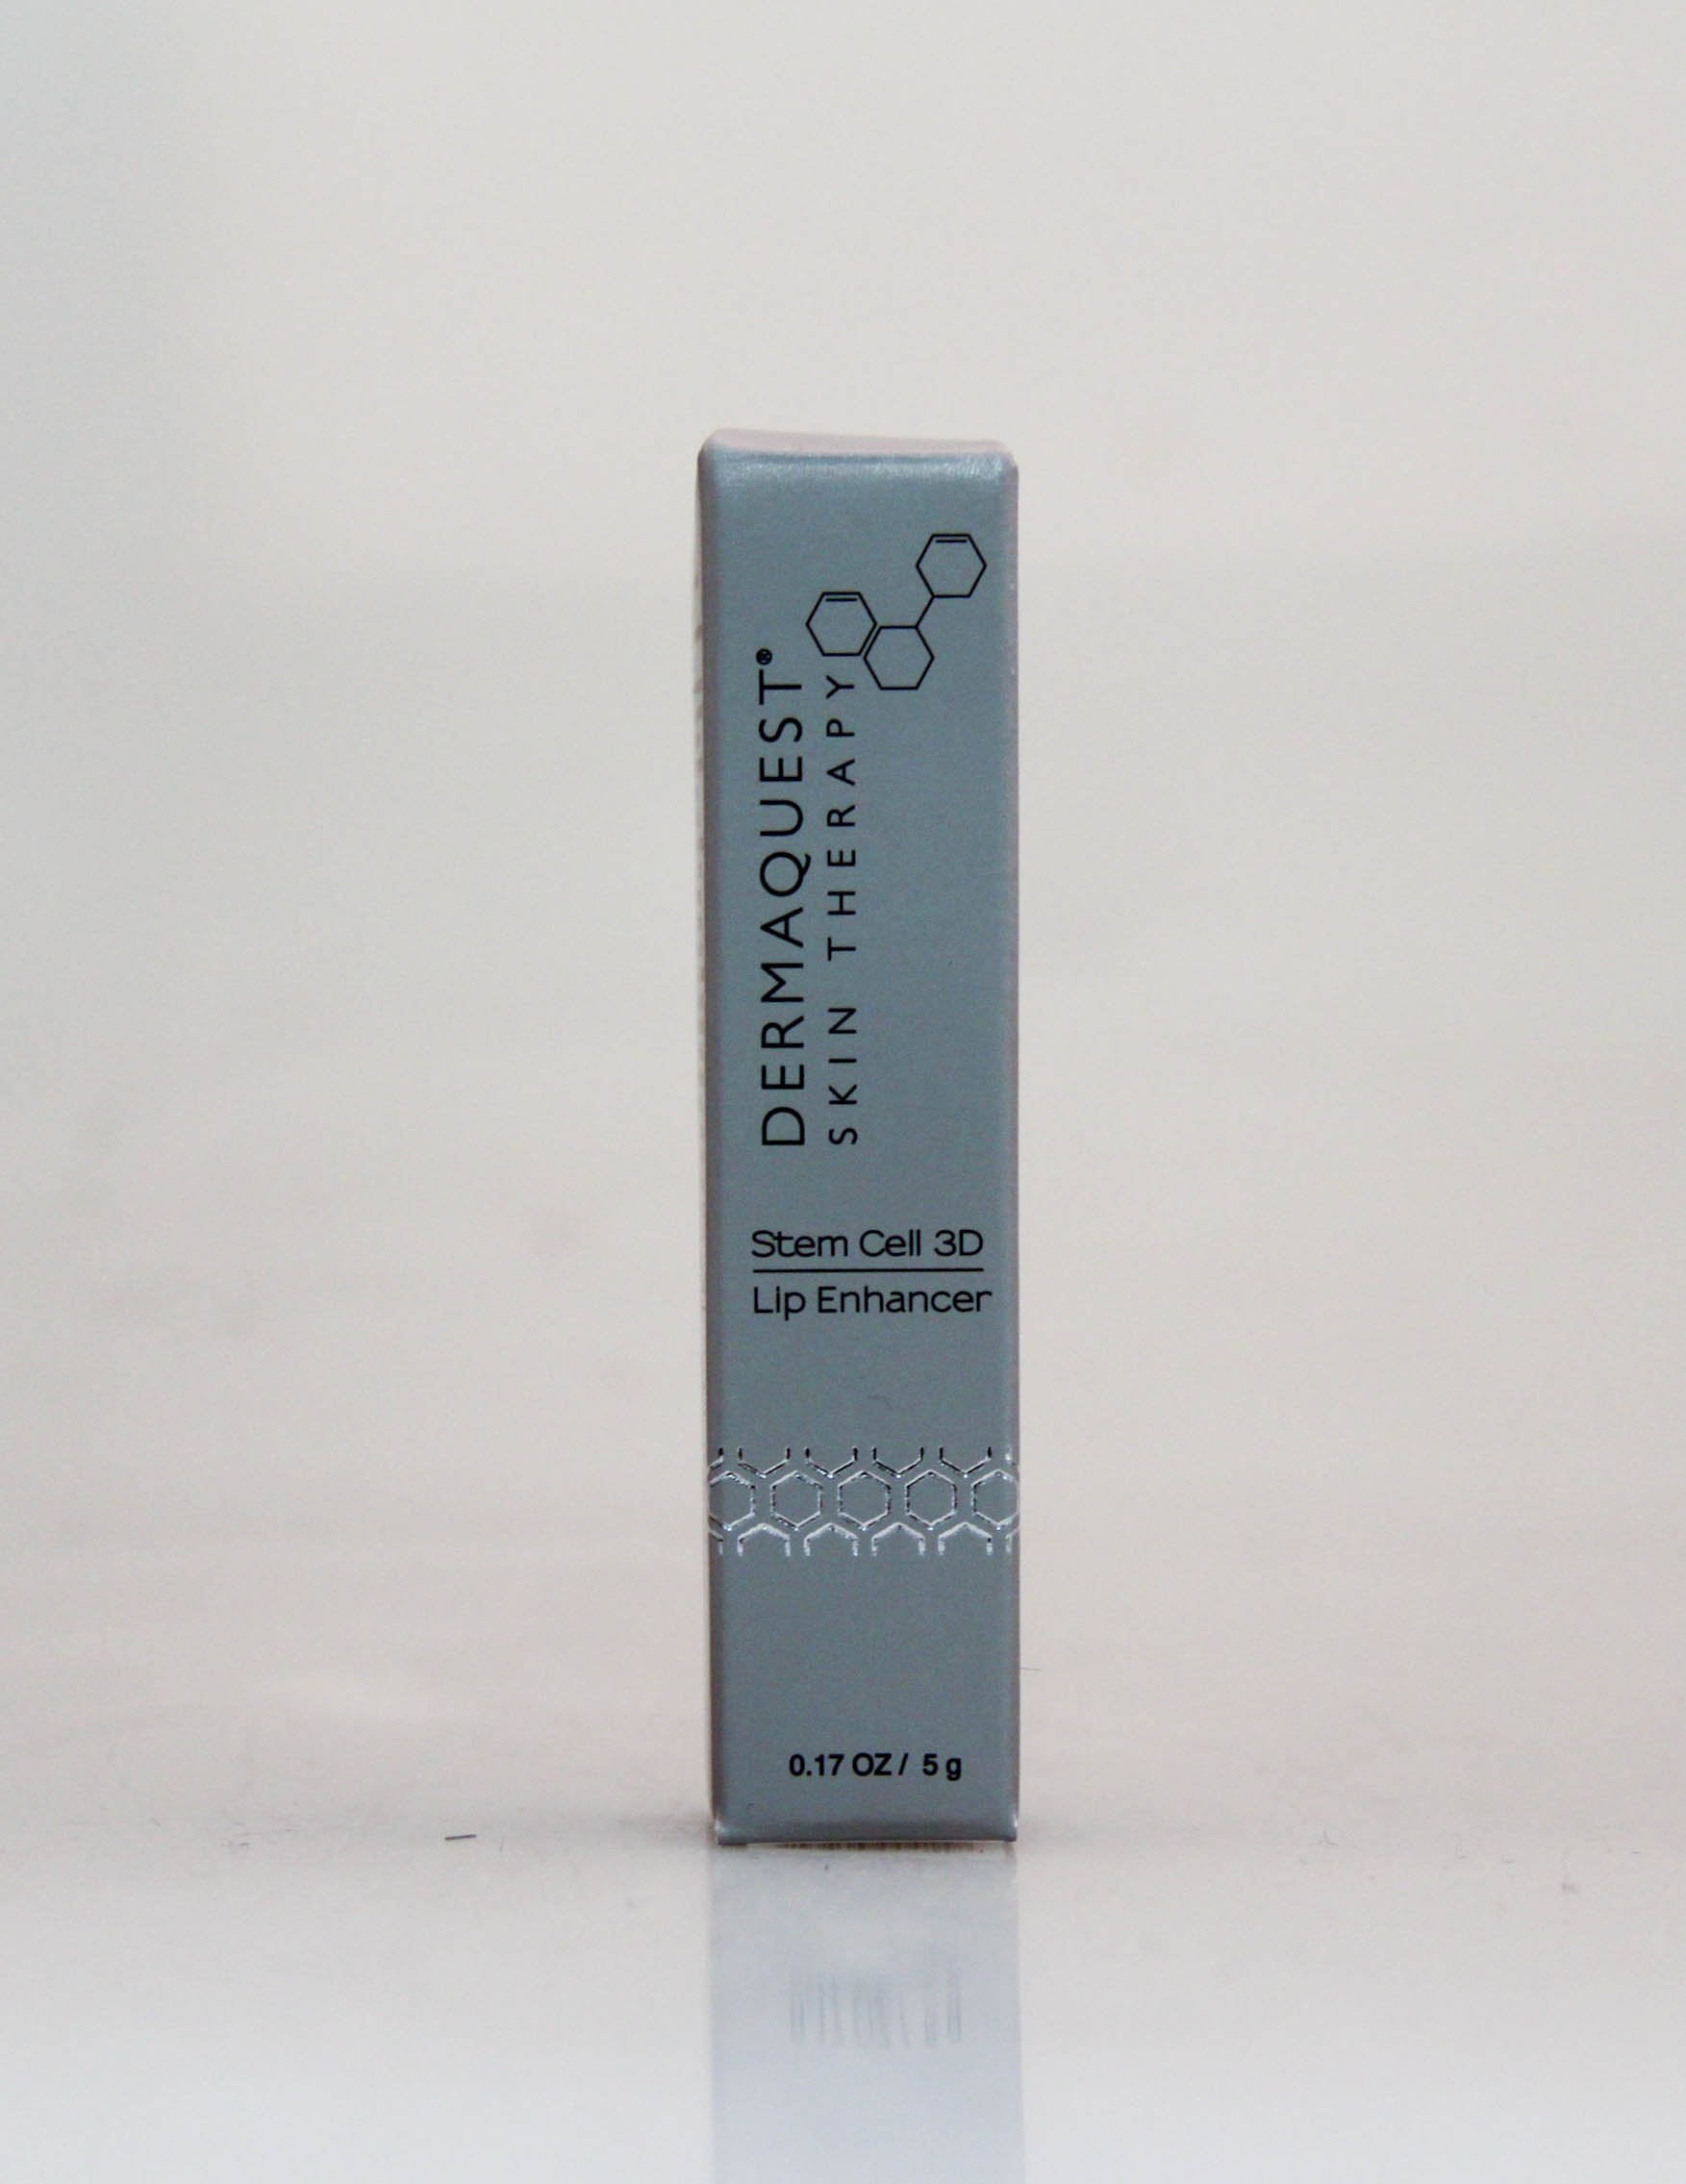 Dermaquest Stem Cell 3D Lip Enhancer - Instantly Plumping, Energizing and Moisturizing, 0.17 oz.